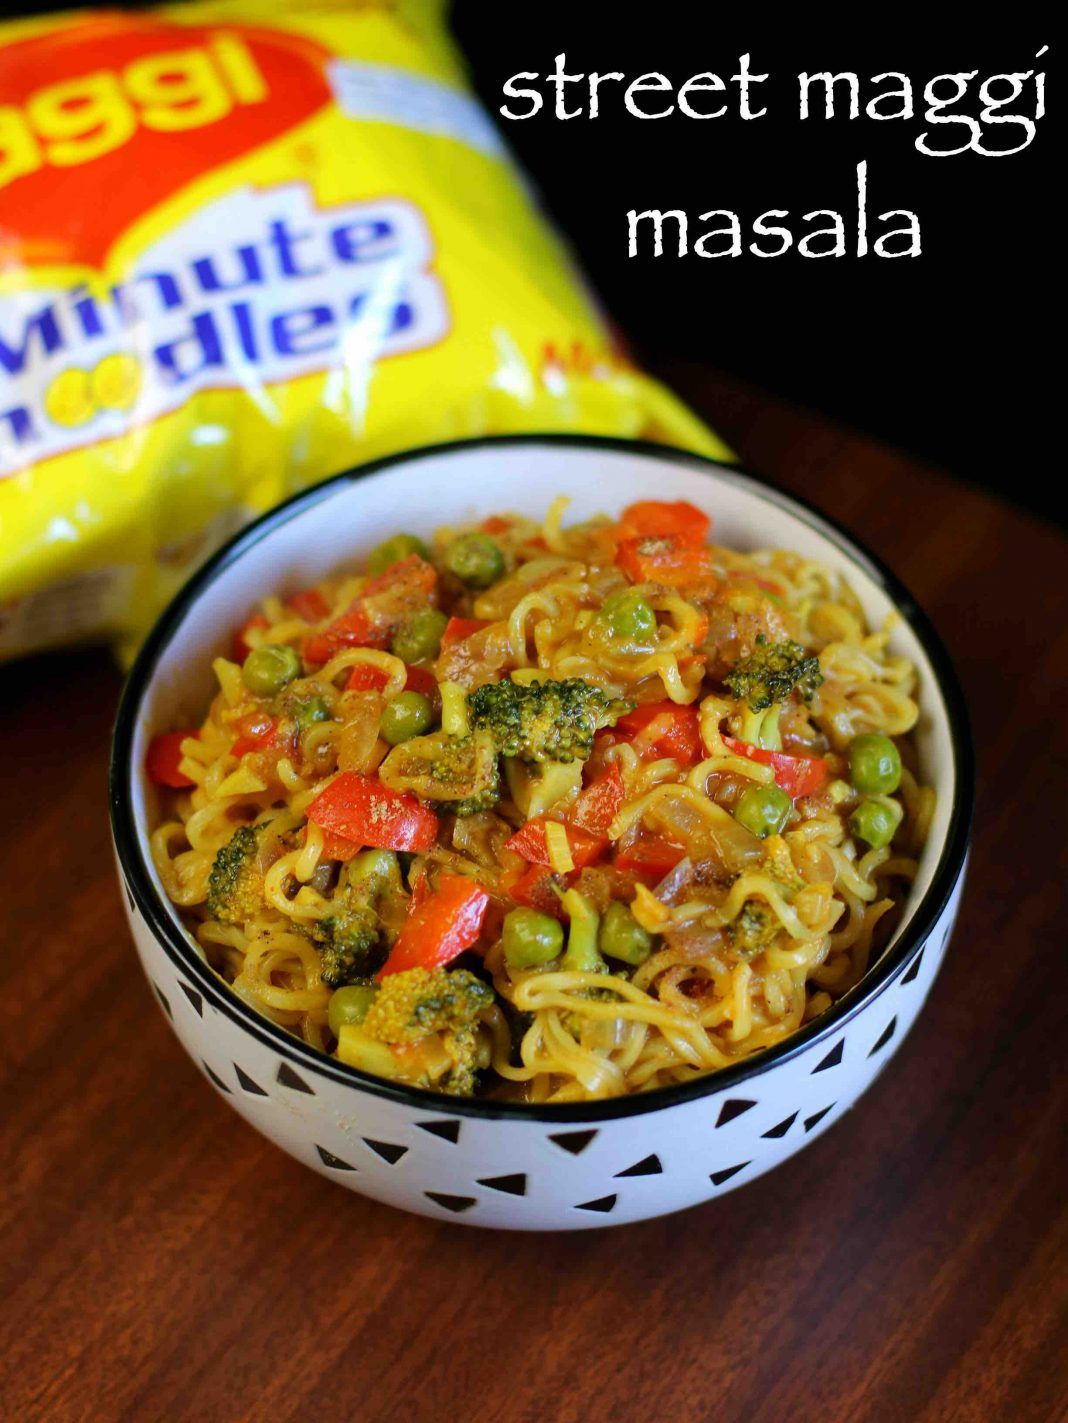 Maggi noodles recipe my favorite indian recipes pinterest maggi noodles recipe maggi masala noodles maggi recipes with step by step photovideo street style 2 minute maggi noodles for breakfast and evening snack forumfinder Choice Image